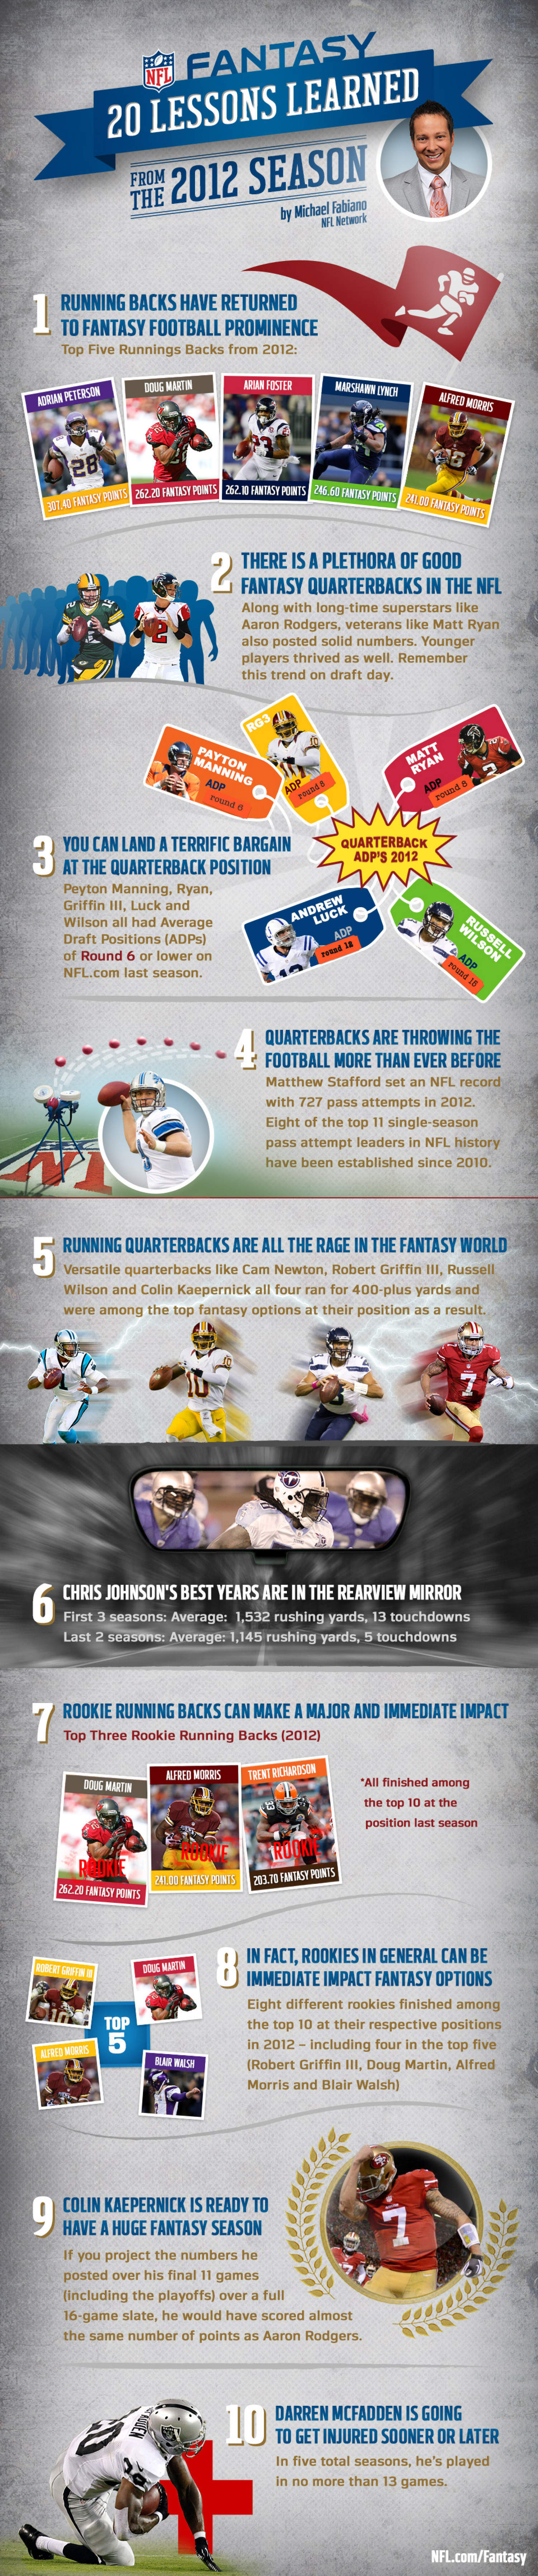 Top 20 Fantasy Football Lessons Infographic